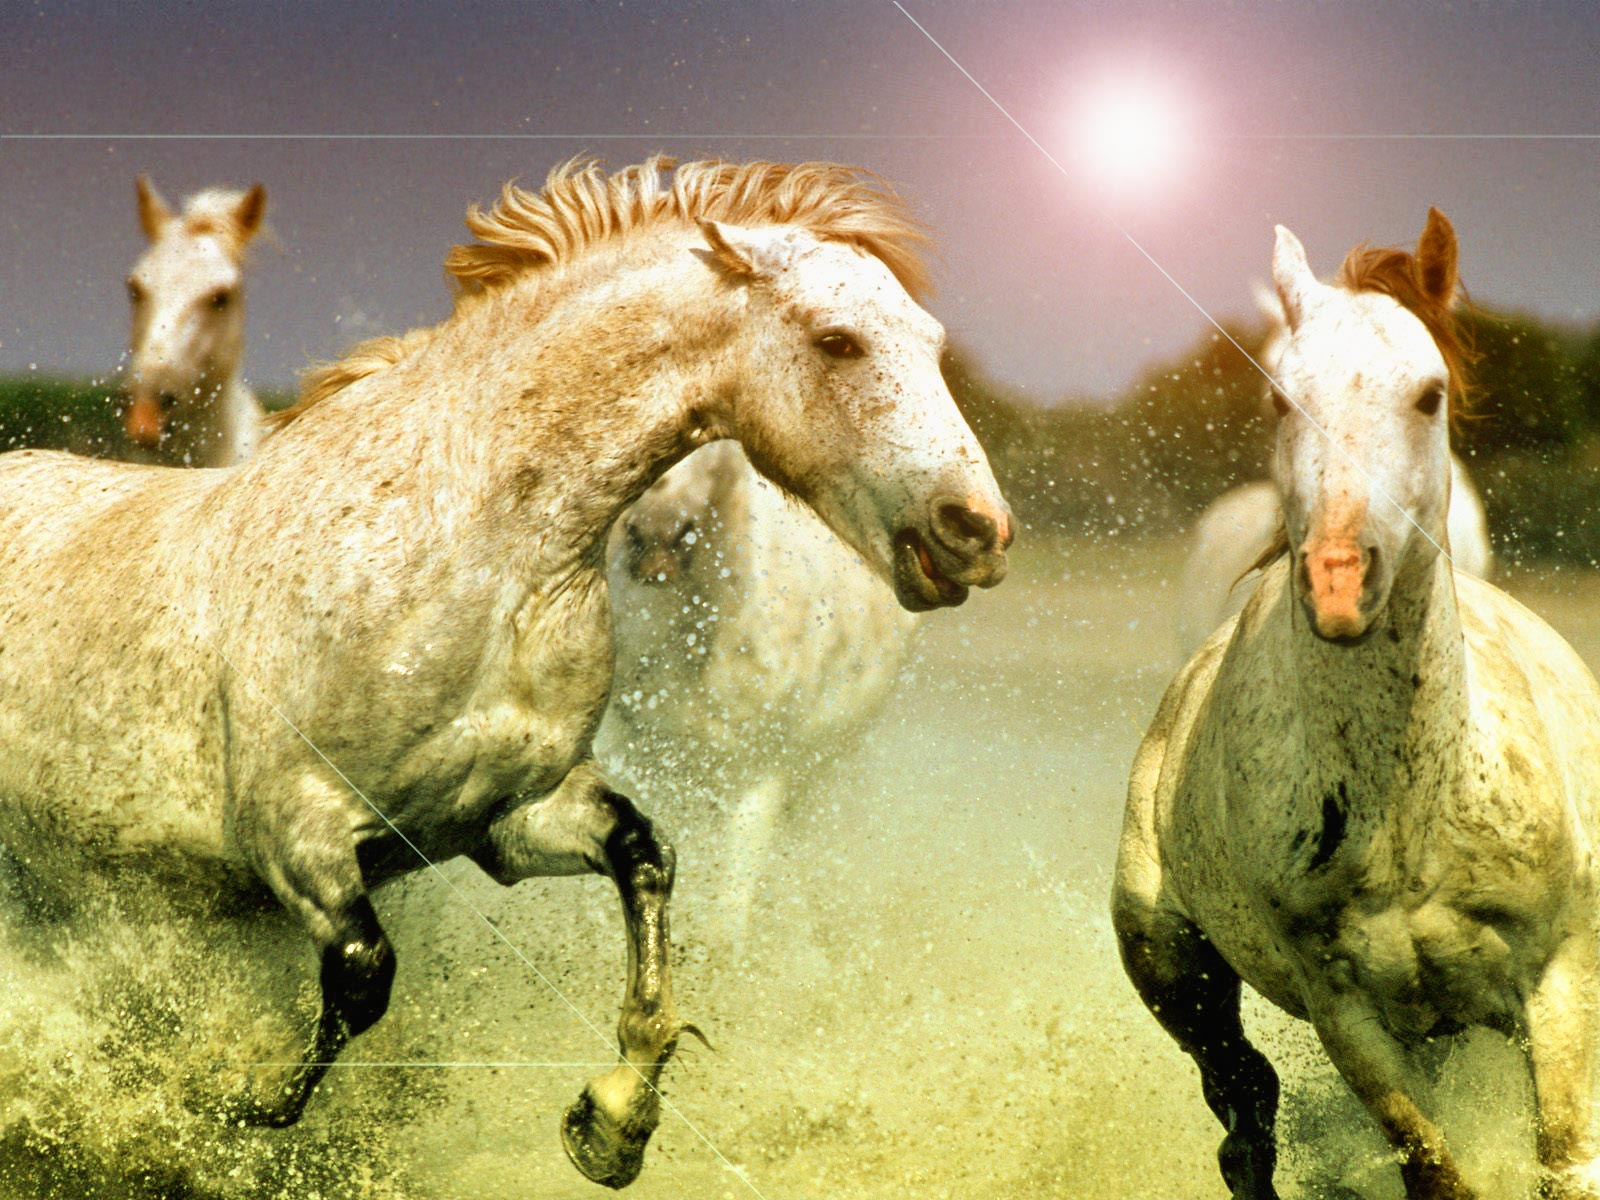 Good   Wallpaper Horse Abstract - abstract+horses+hd+wallpapers+1  Perfect Image Reference_381134.jpg